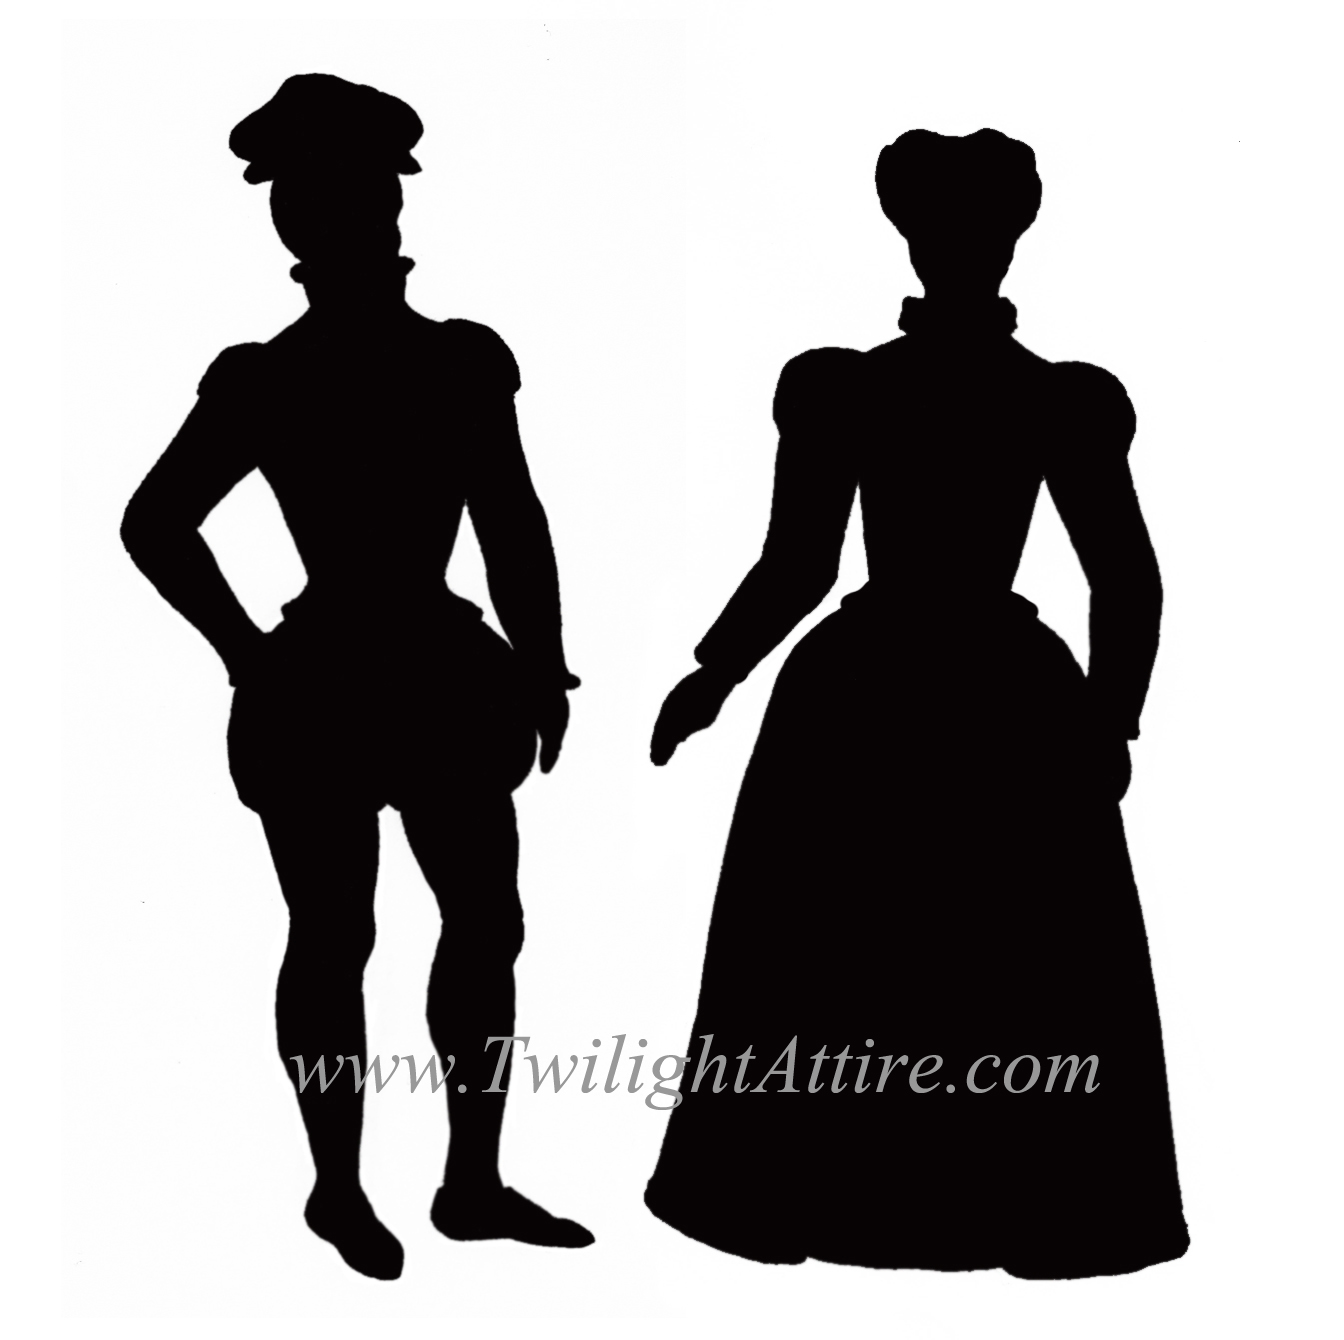 The Best Free History Silhouette Images Download From 188 Free Silhouettes Of History At